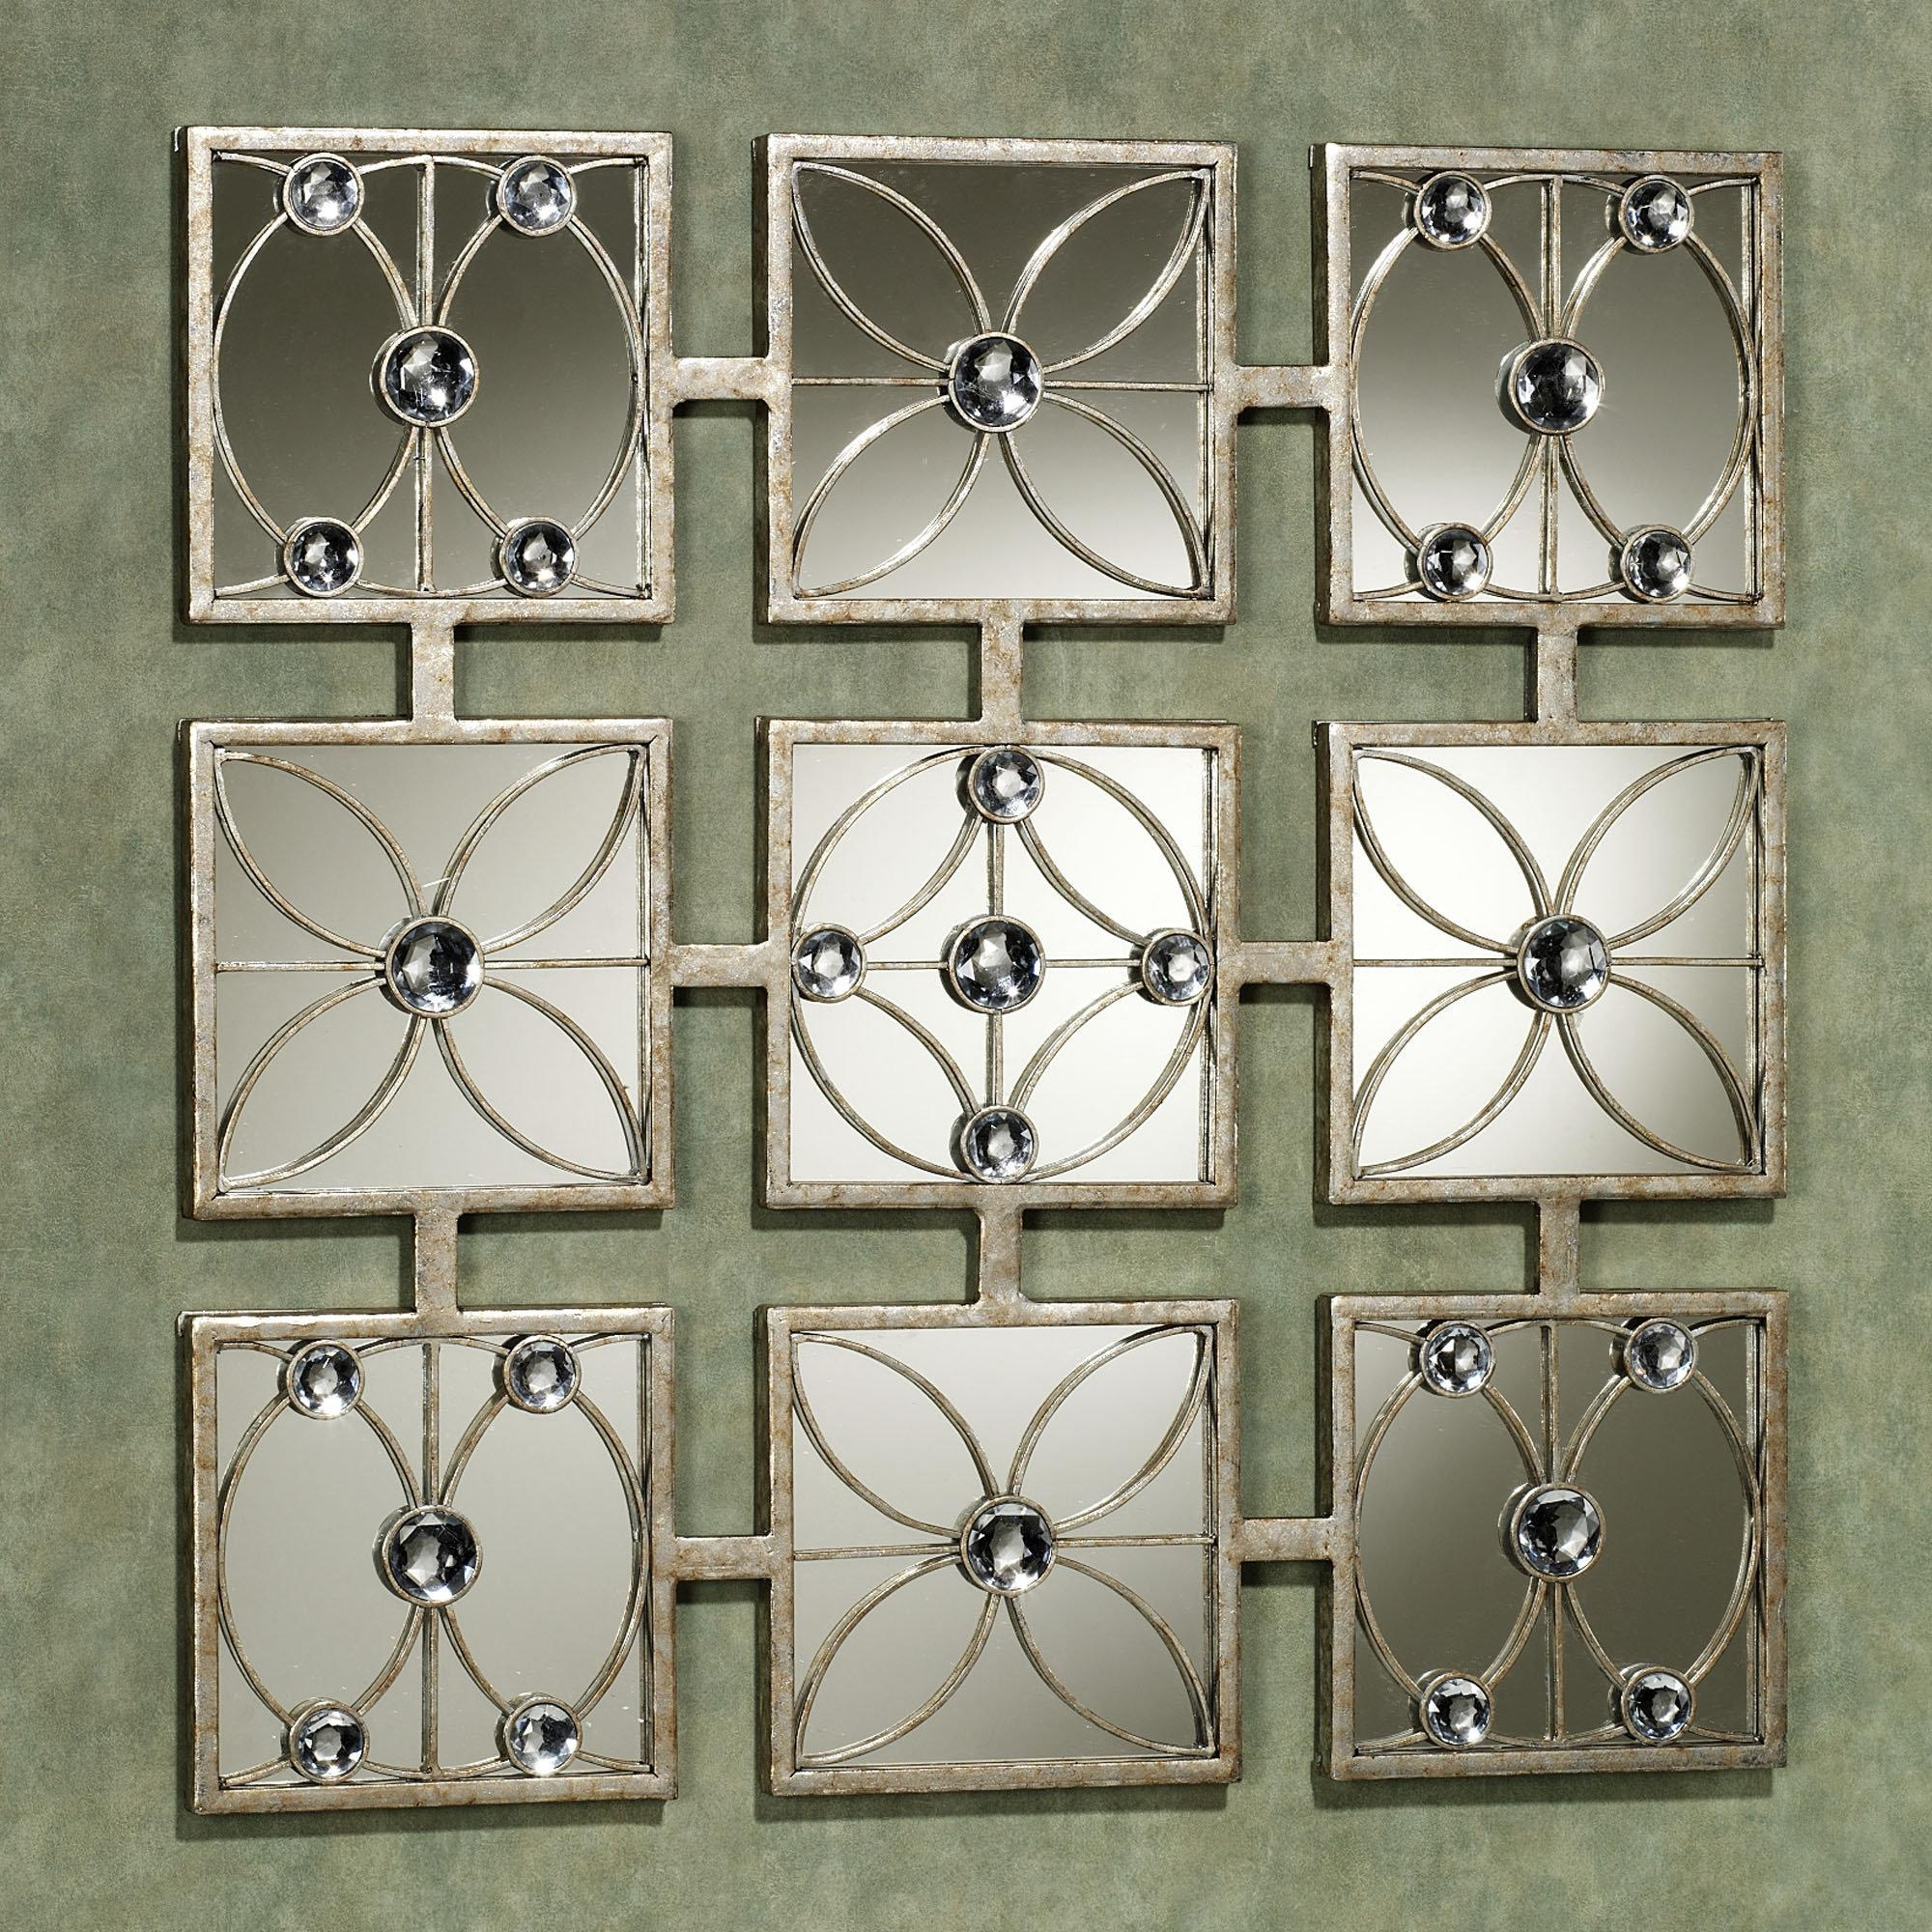 Wall Art Designs: Wonderful Wall Art Mirror From Glass With For Jeweled Metal Wall Art (Image 15 of 20)